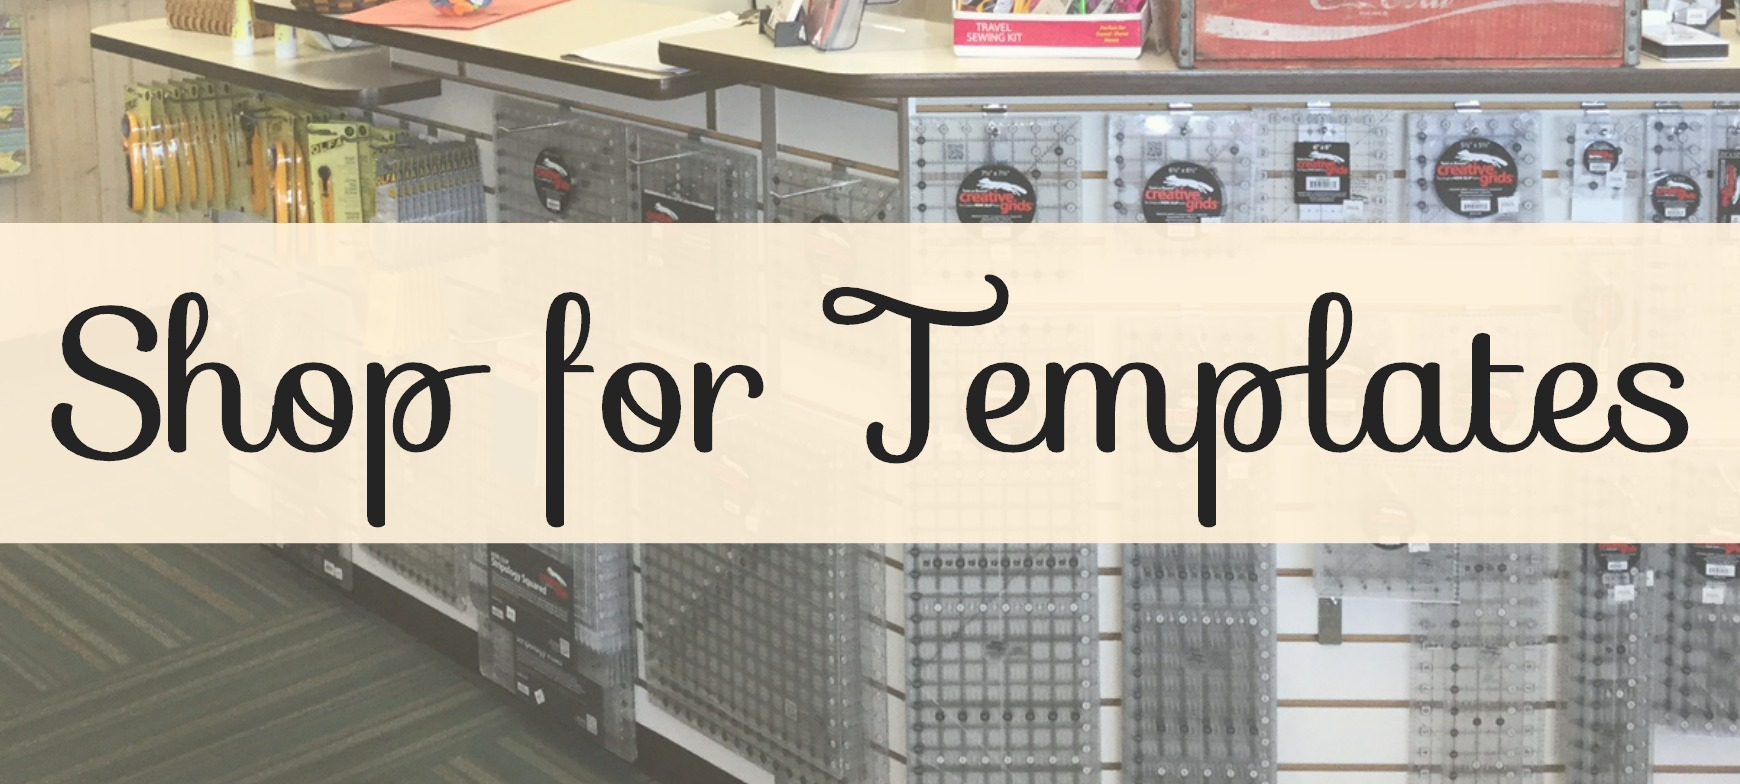 Shop for Templates banner.jpg